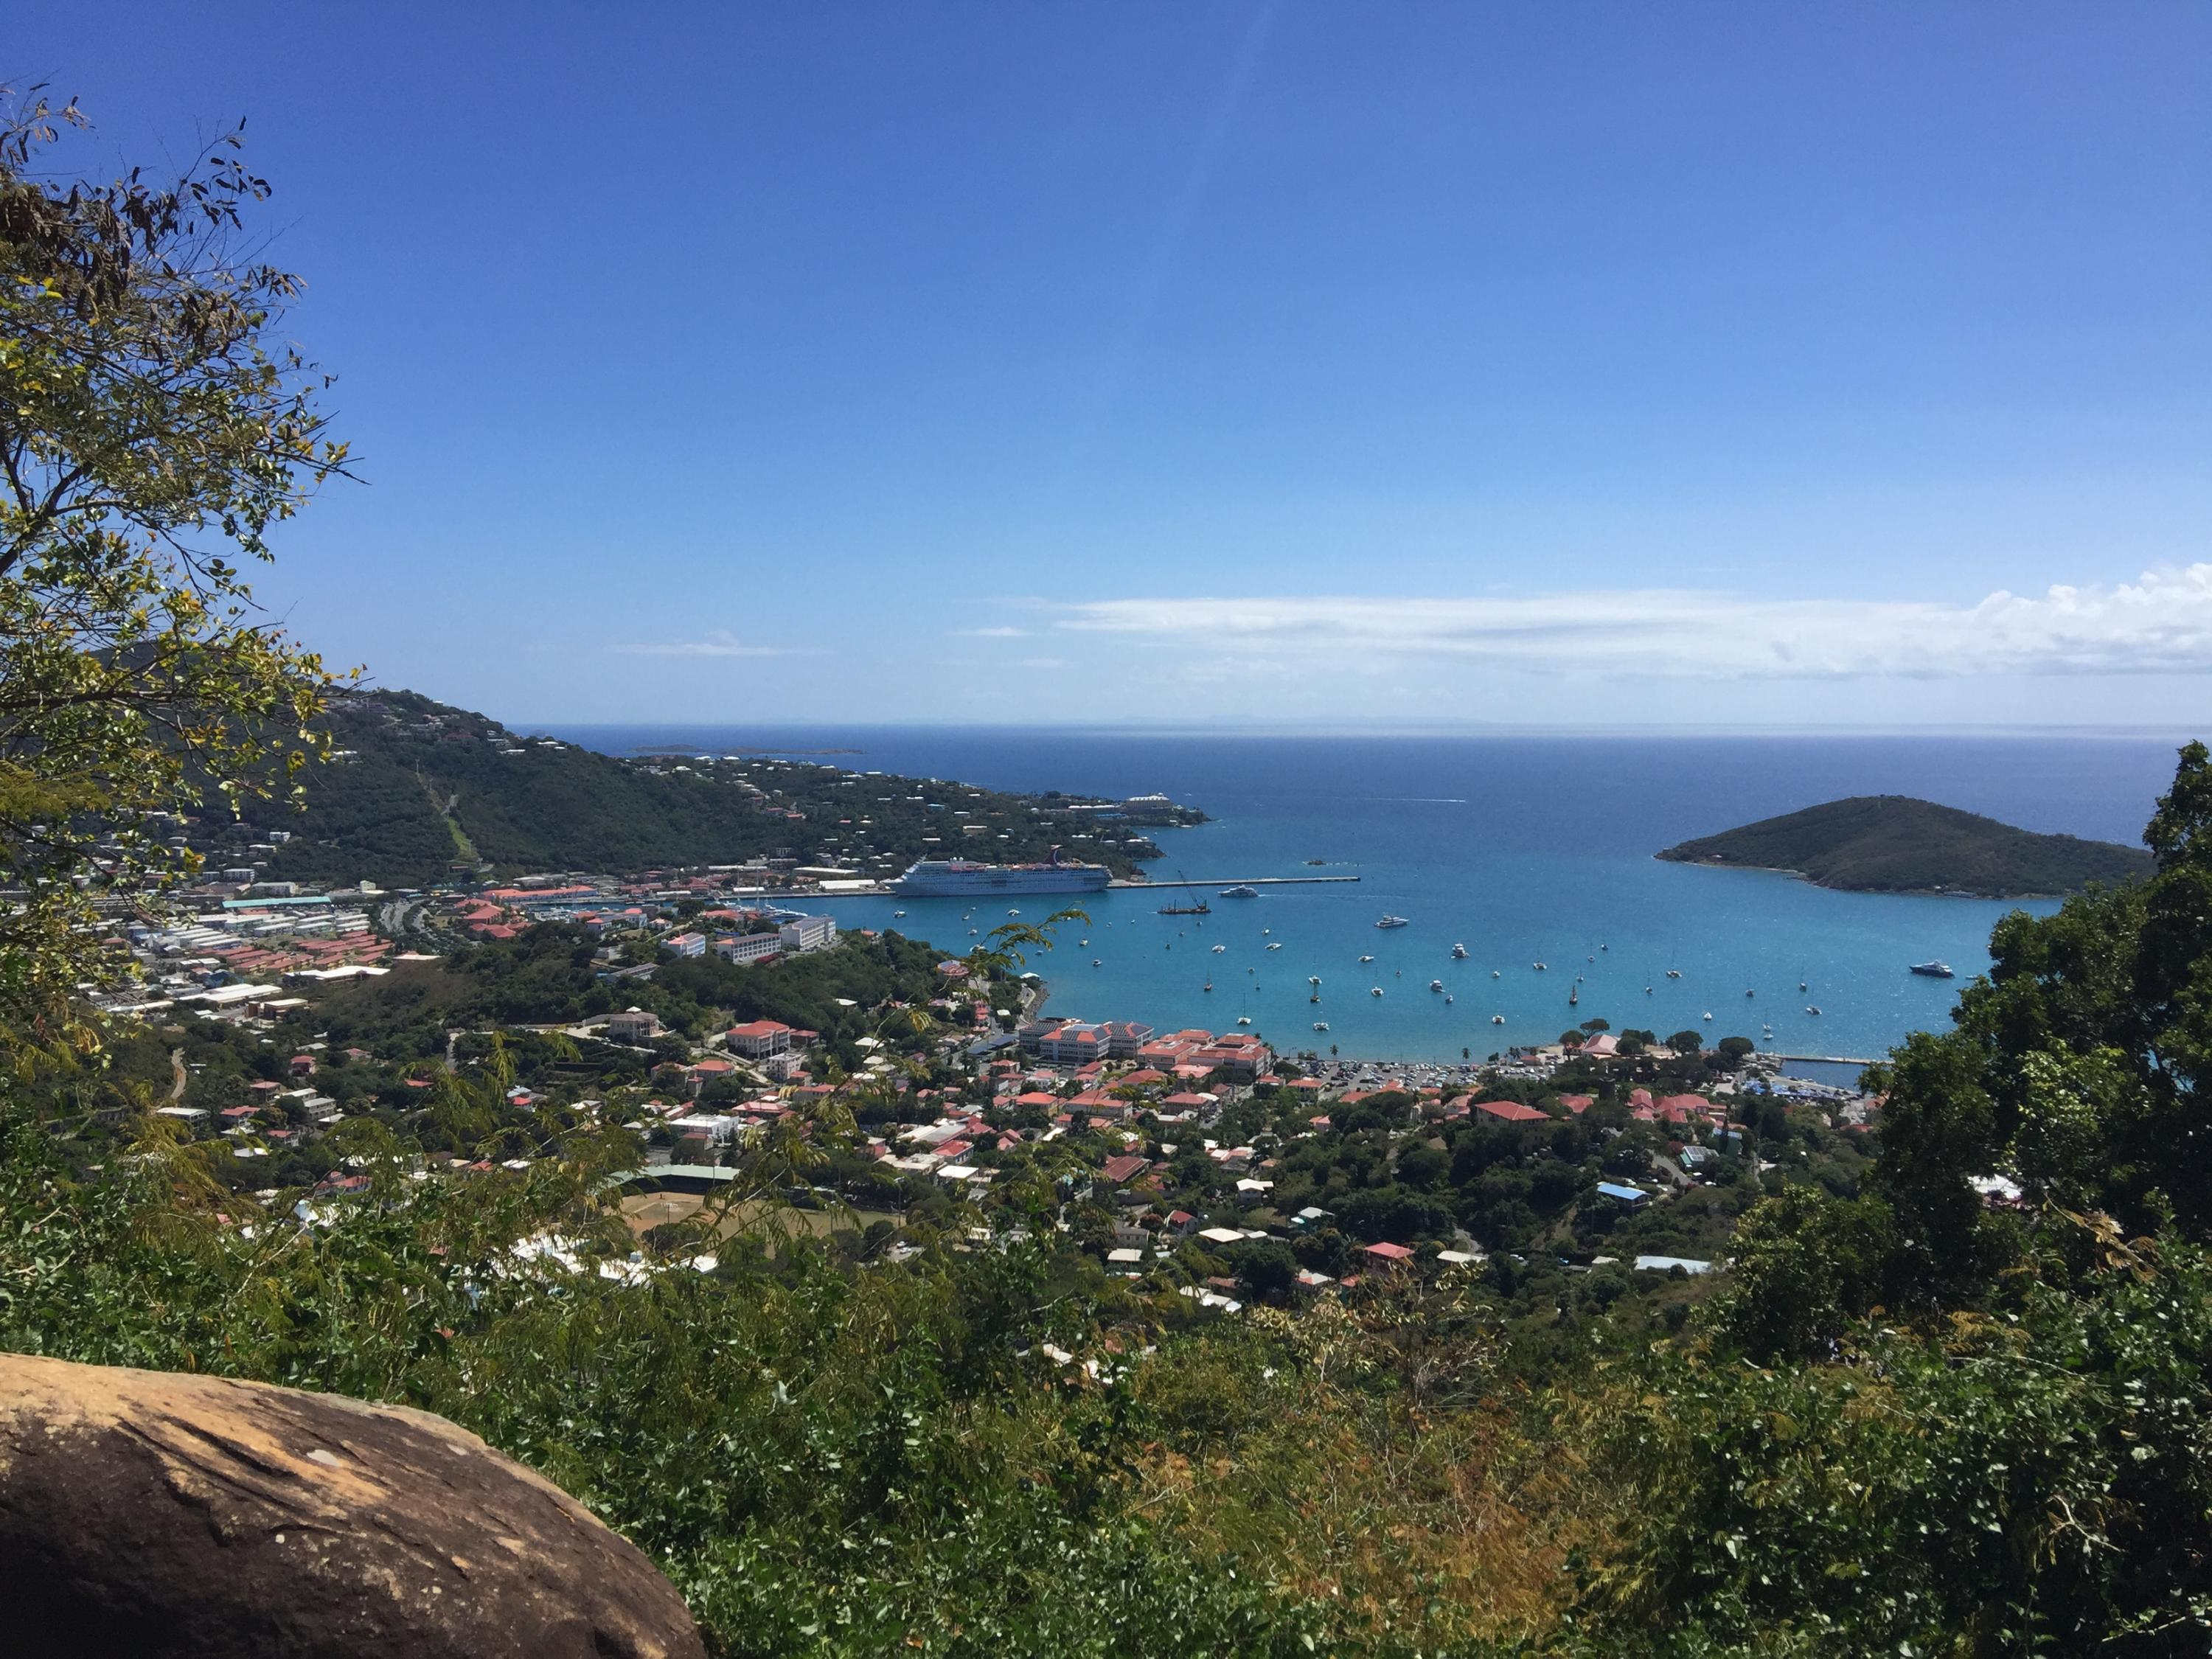 Land for Sale at 23-29 Mafolie GNS 23-29 Mafolie GNS St Thomas, Virgin Islands 00802 United States Virgin Islands